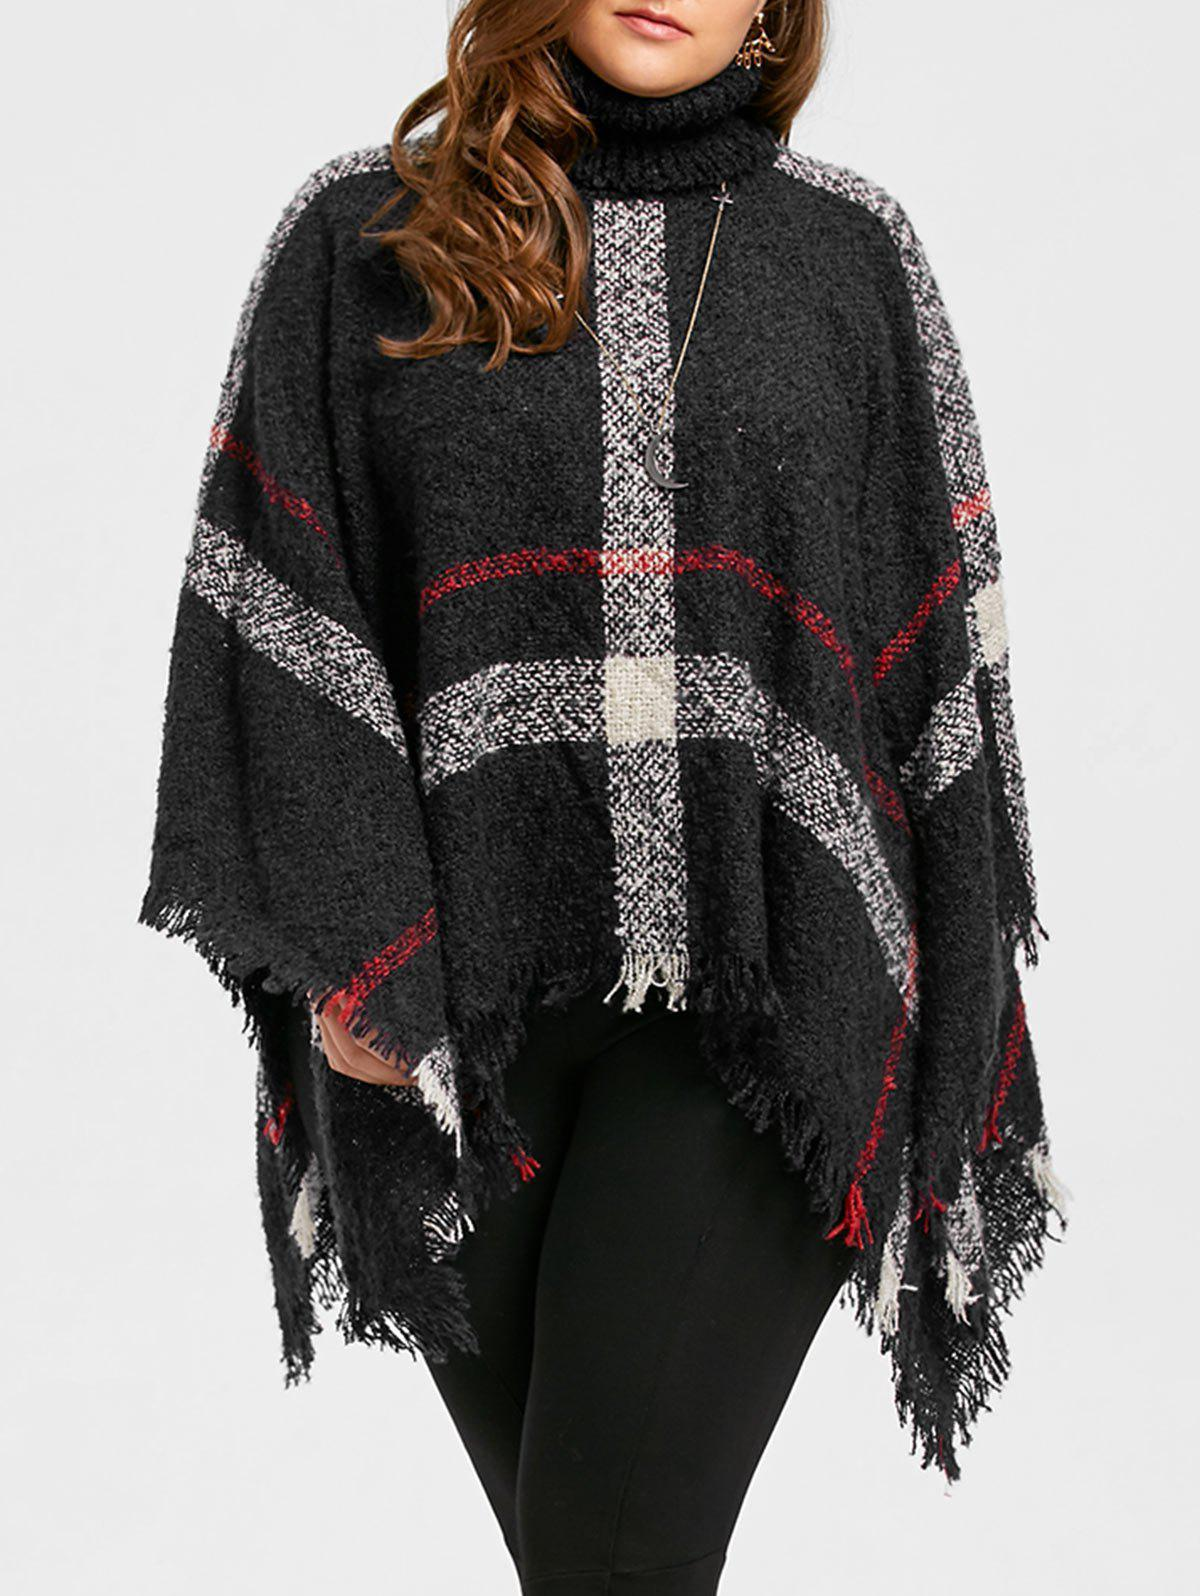 Asymmetric Turtleneck Plus Size Print Cape SweaterWOMEN<br><br>Size: ONE SIZE; Color: BLACK; Type: Pullovers; Material: Polyester,Spandex; Sleeve Length: Full; Collar: Turtleneck; Style: Fashion; Season: Fall,Winter; Pattern Type: Striped; Weight: 0.5800kg; Package Contents: 1 x Sweater;